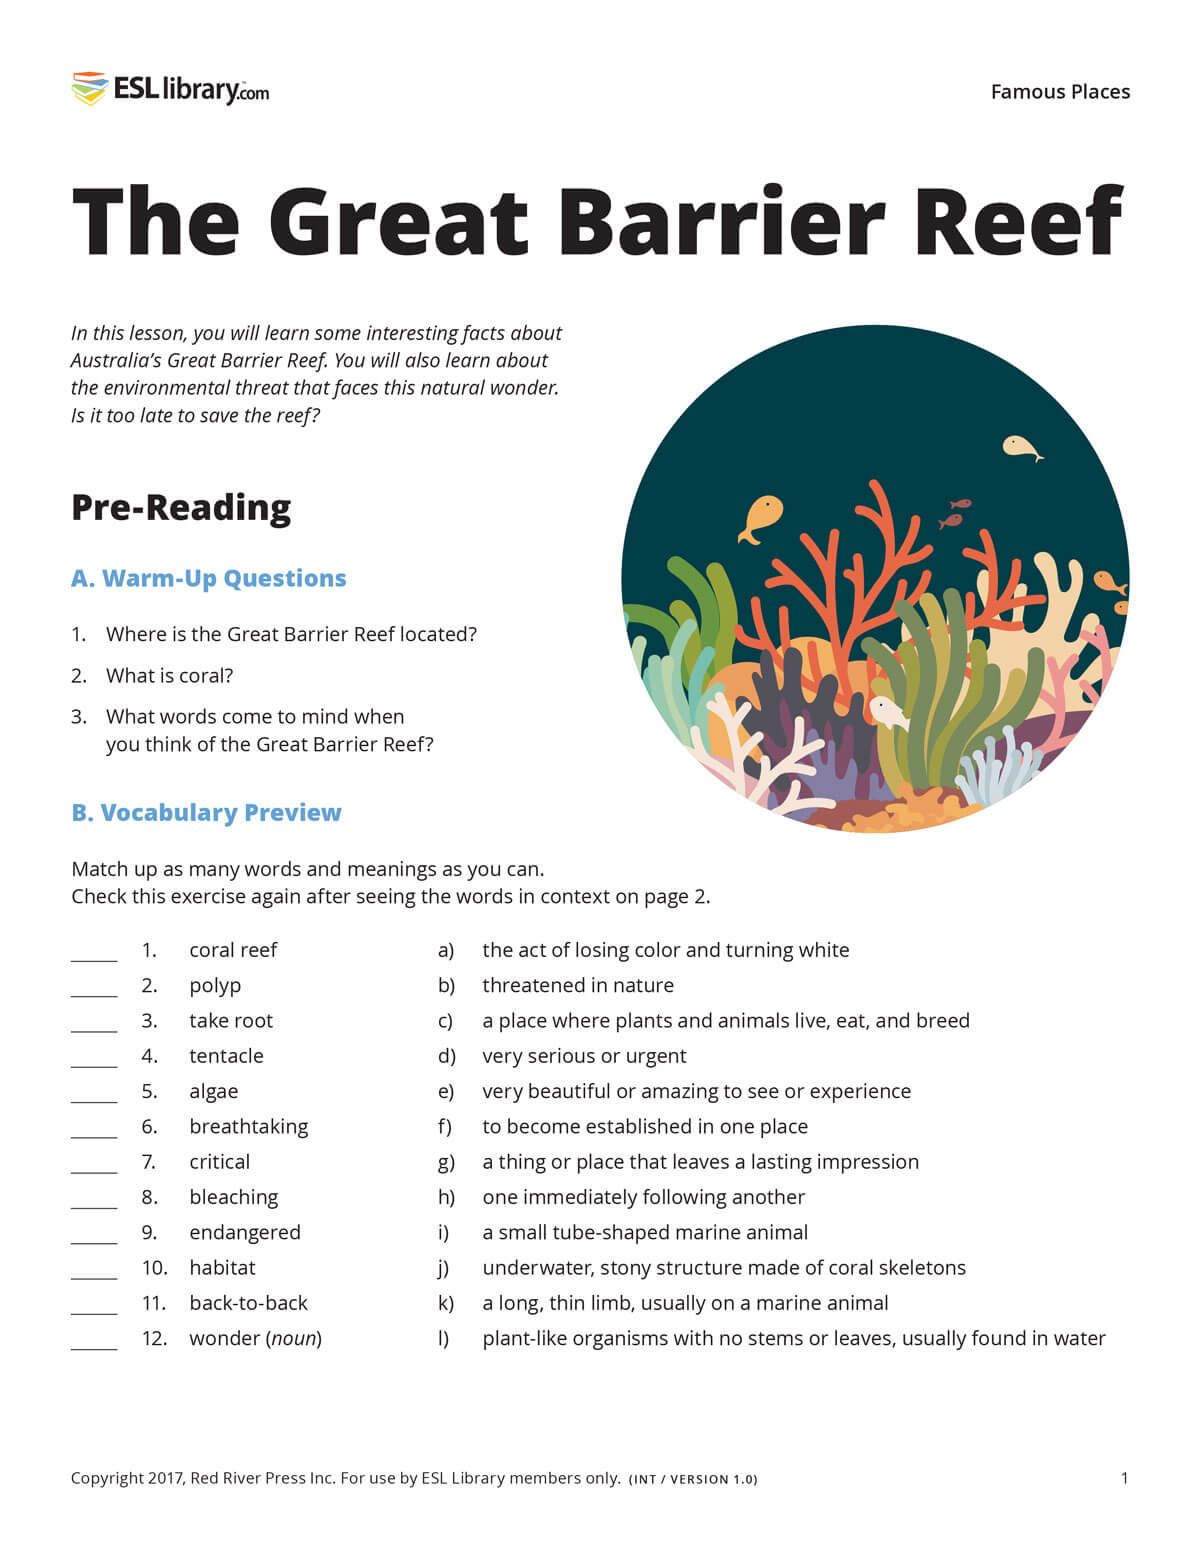 A sample lesson page from the print version of The Great Barrier Reef, showing pre-reading activities such as warm-up questions and a vocabulary preview, as well as an illustration of coral and fish.